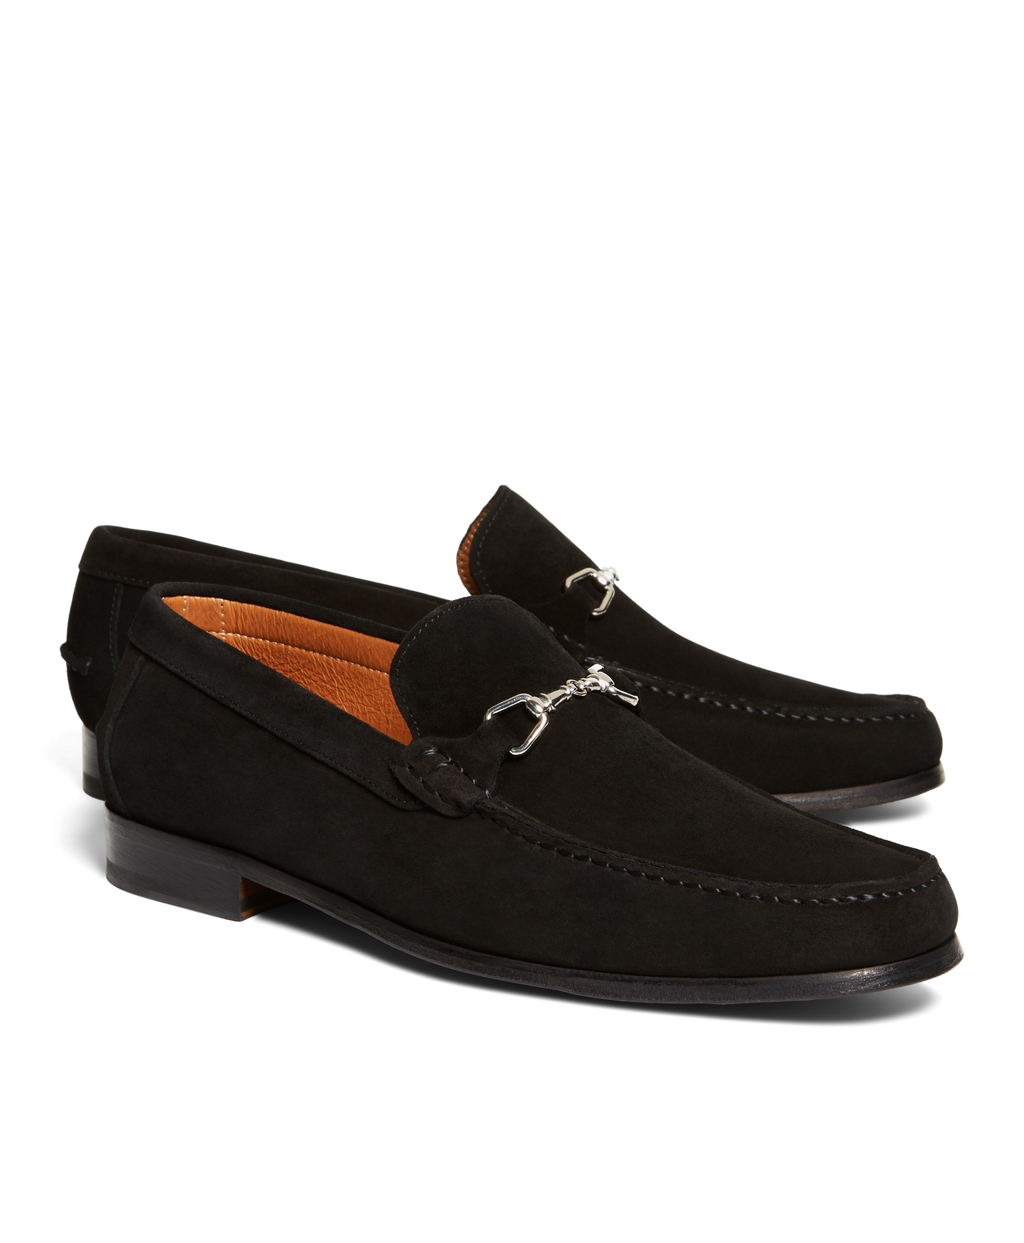 Brooks brothers Suede Buckle Loafers in Black for Men